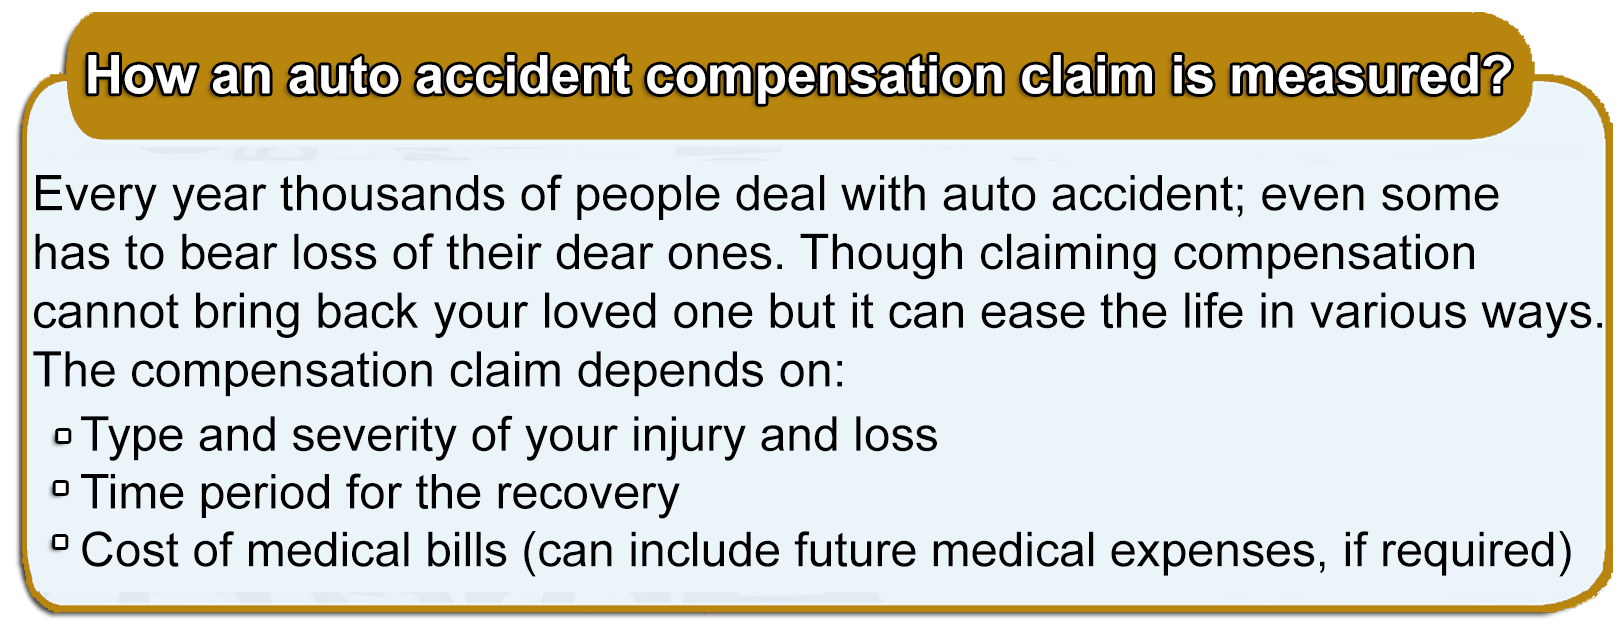 auto accident compensation claim is measured?